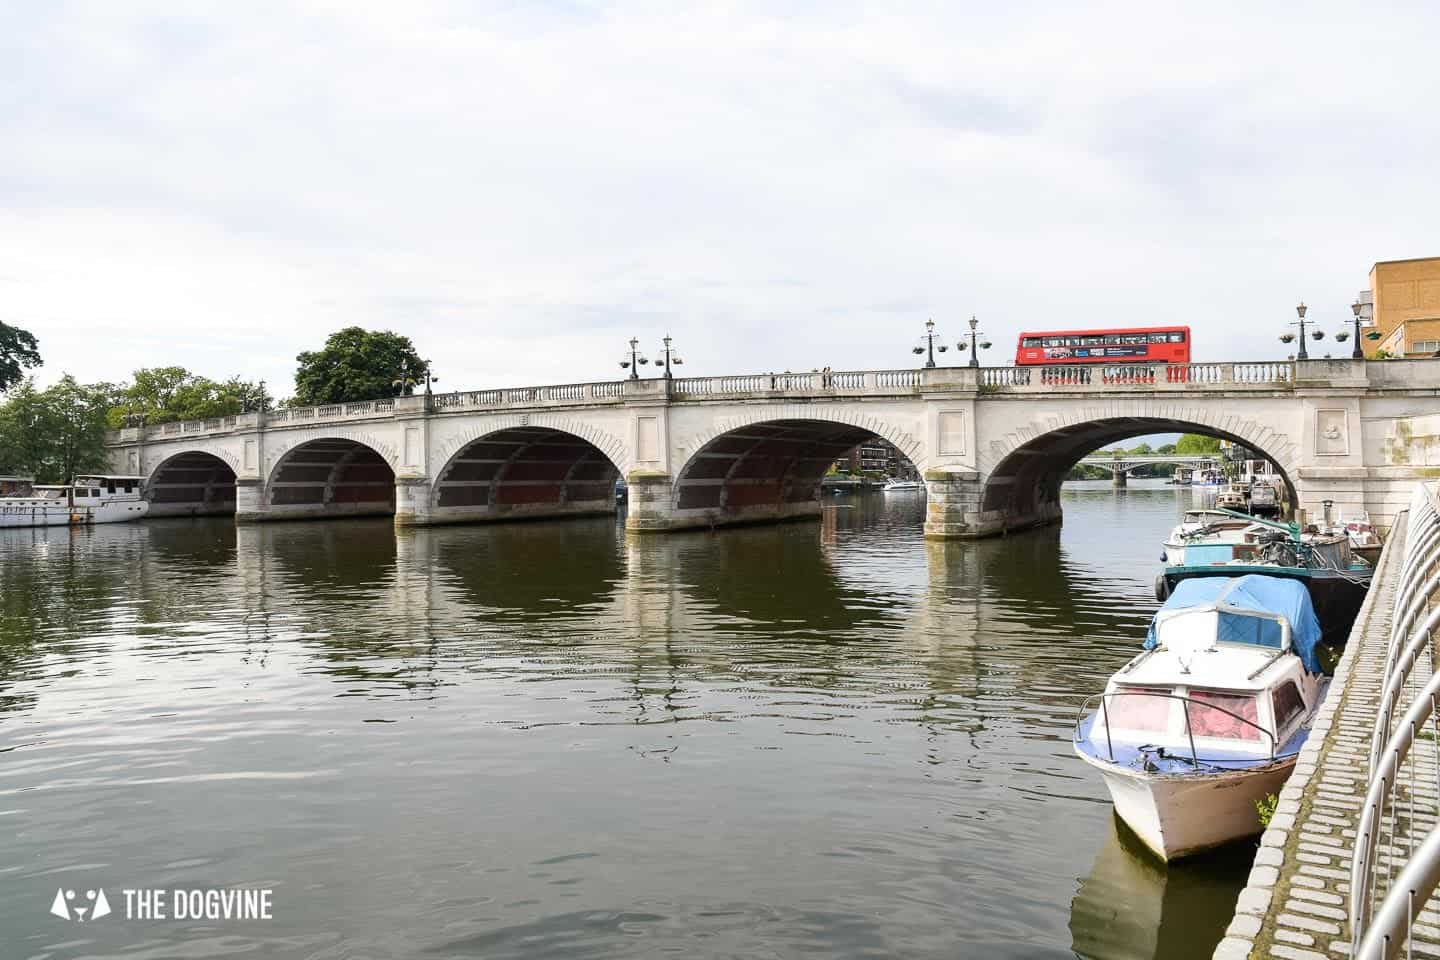 Dog-friendly Go Boat Kingston Upon Thames 30